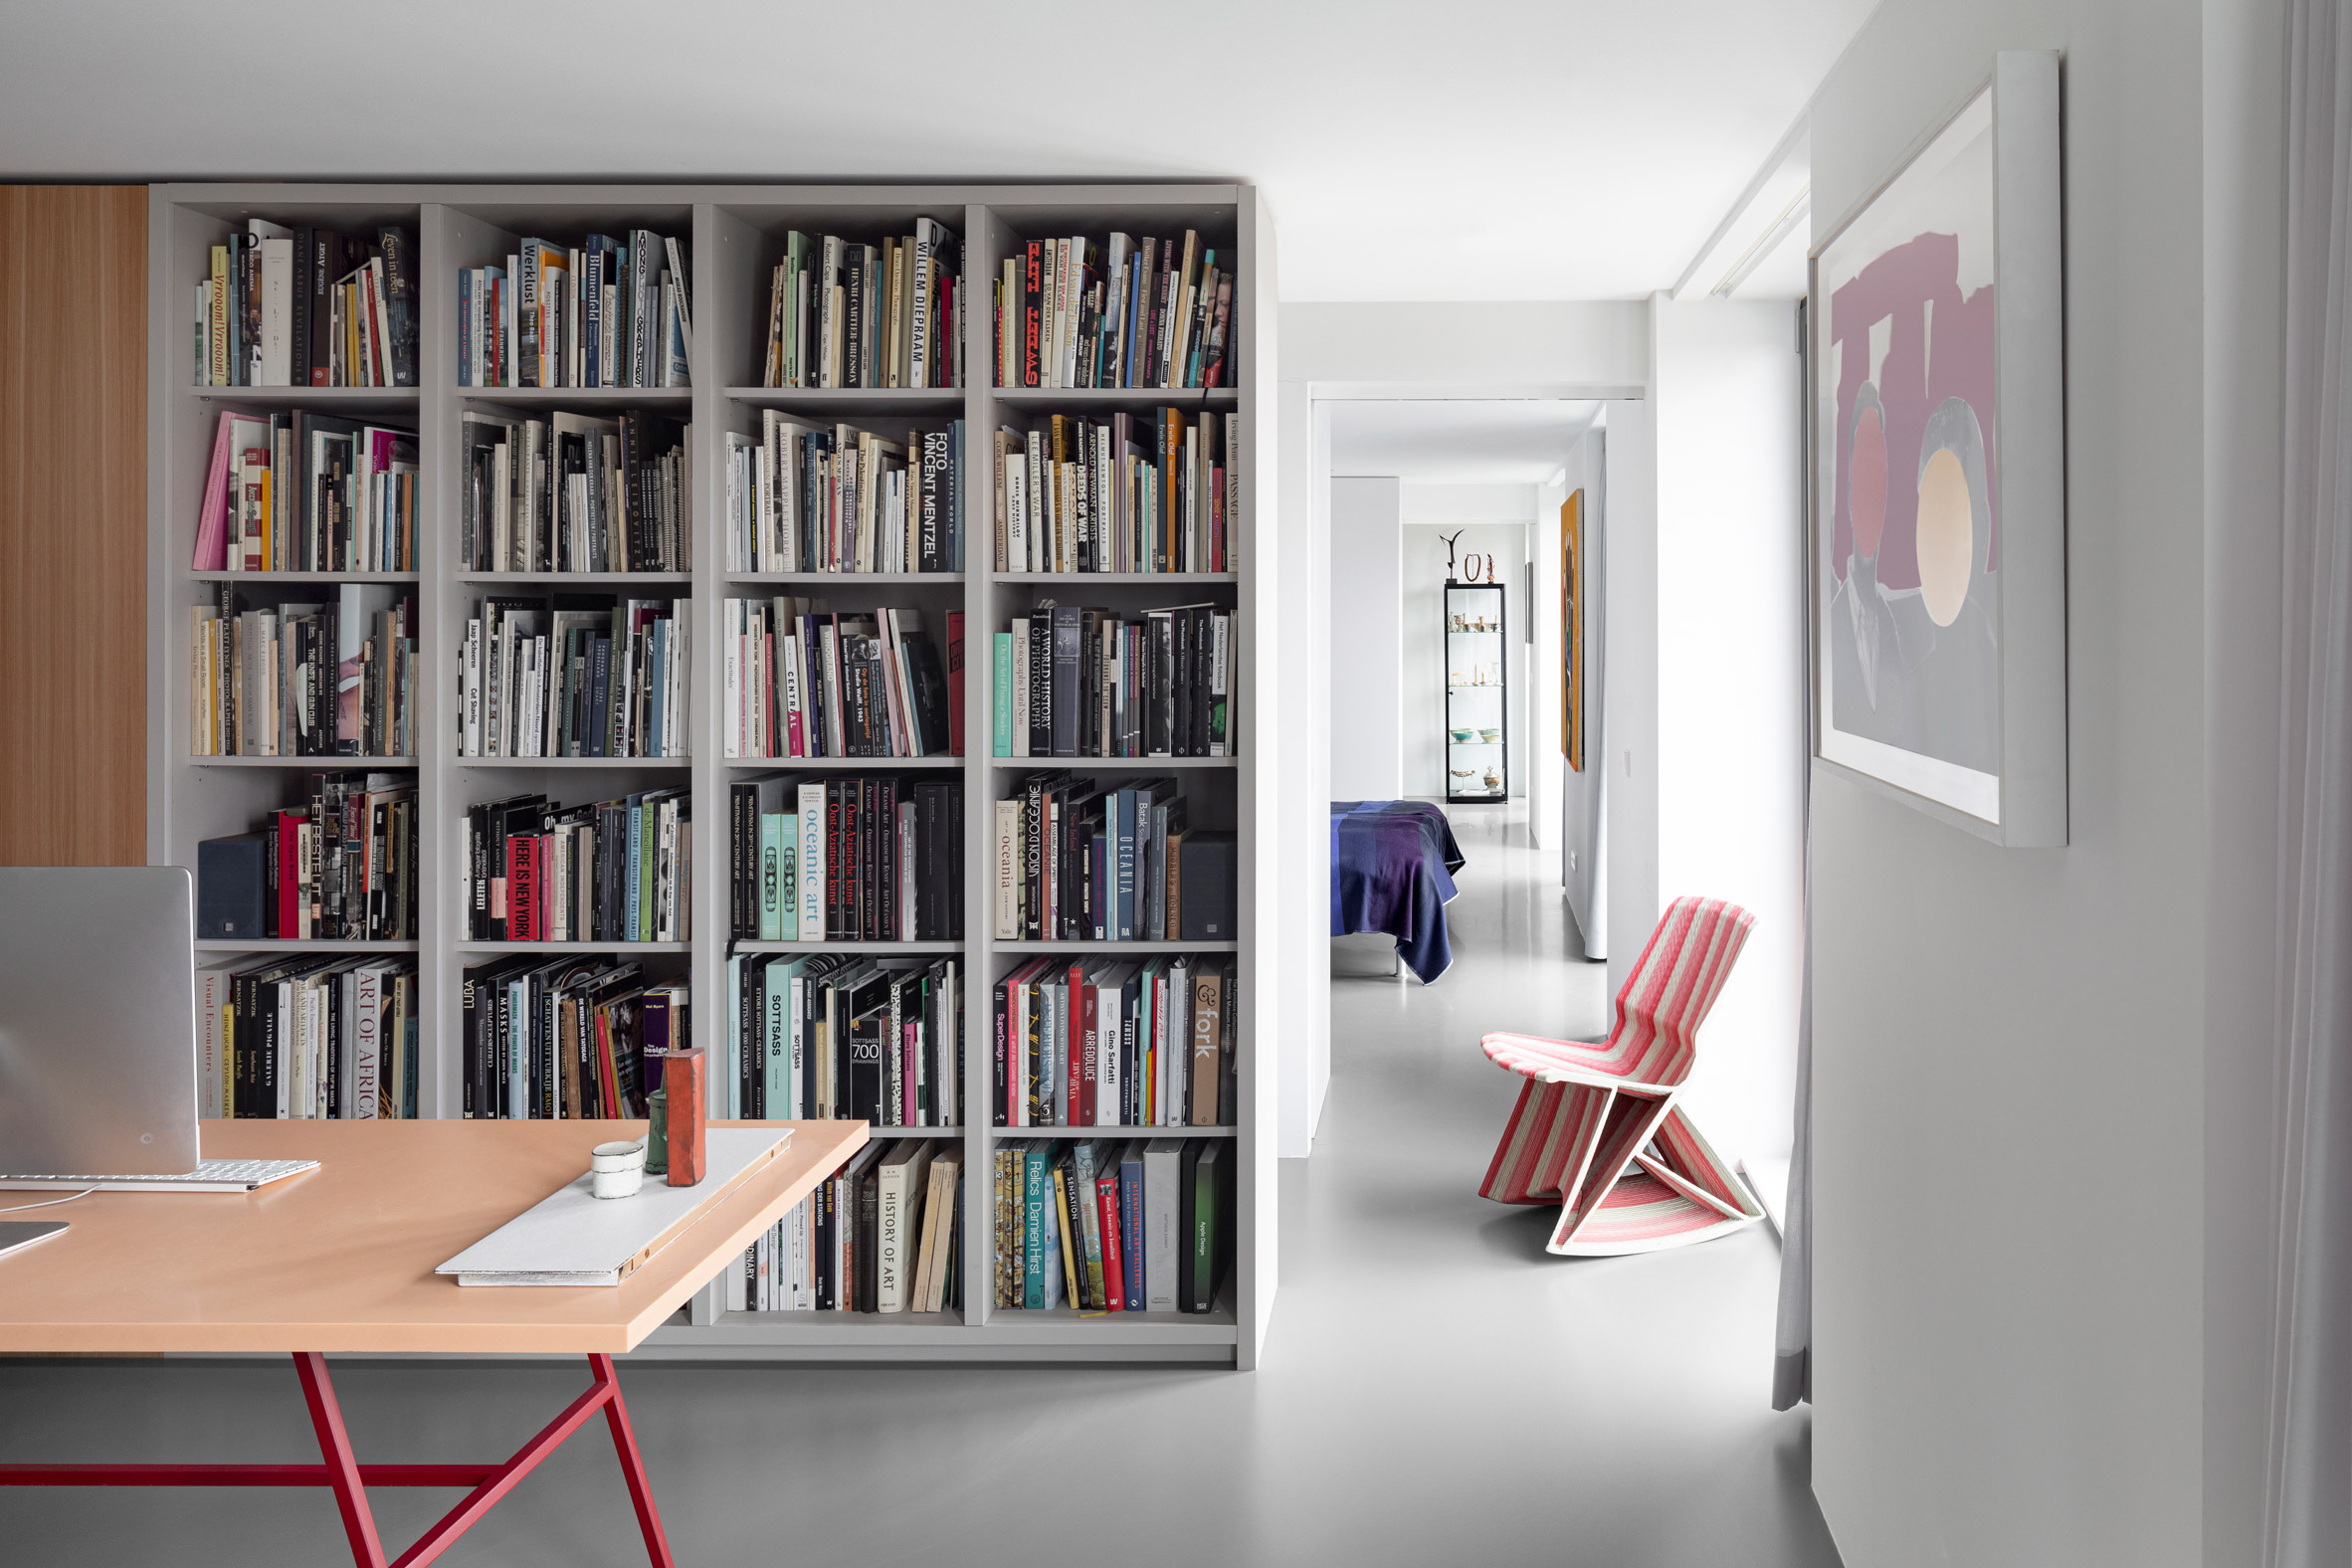 Home office with book shelves in Home of the Arts by i29